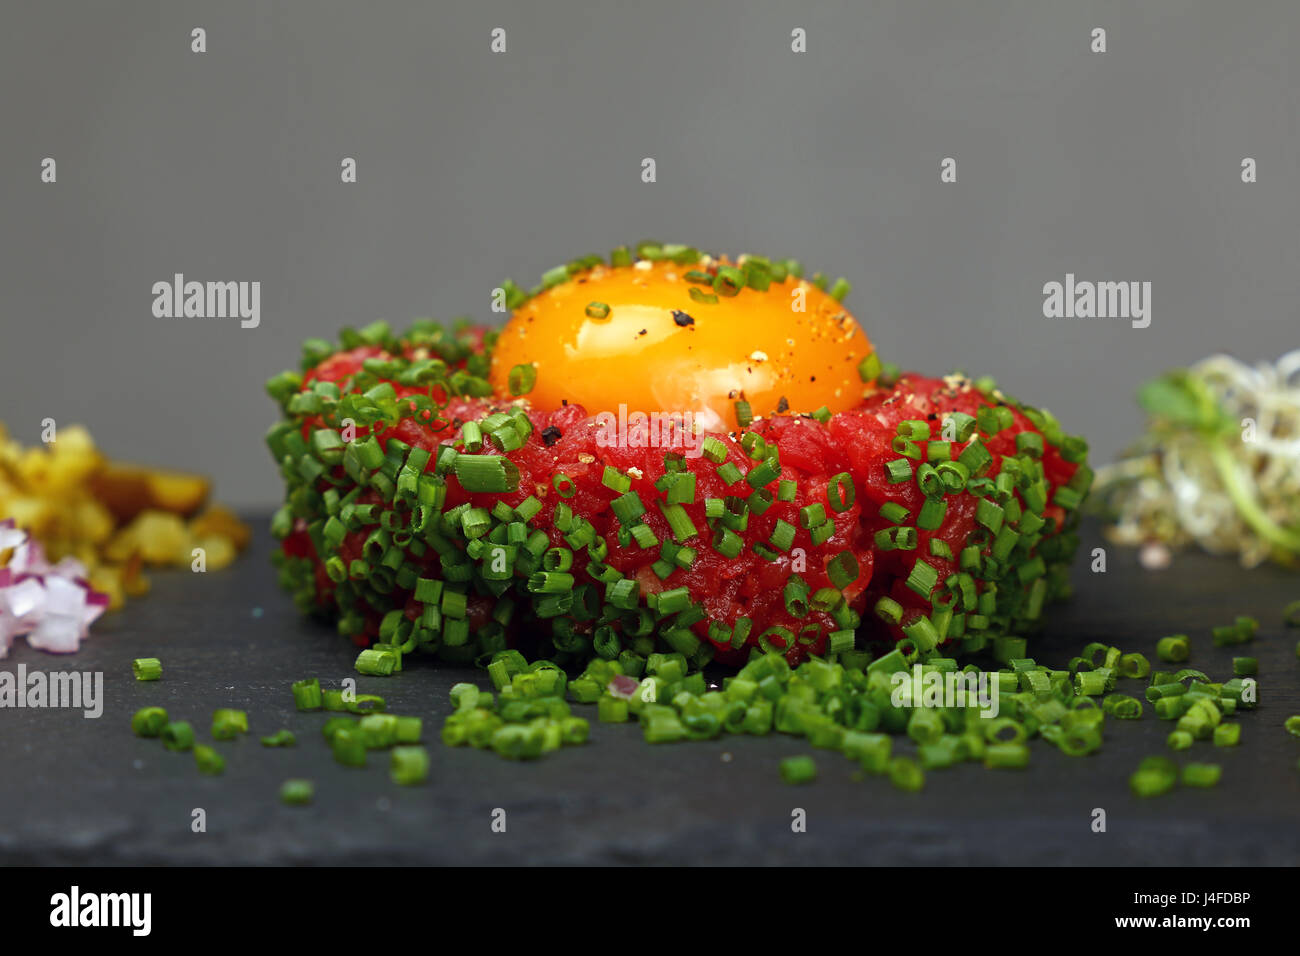 One portion of raw minced beef meat tartare steak with egg yolk ant green shallot onions served on black slate board, - Stock Image